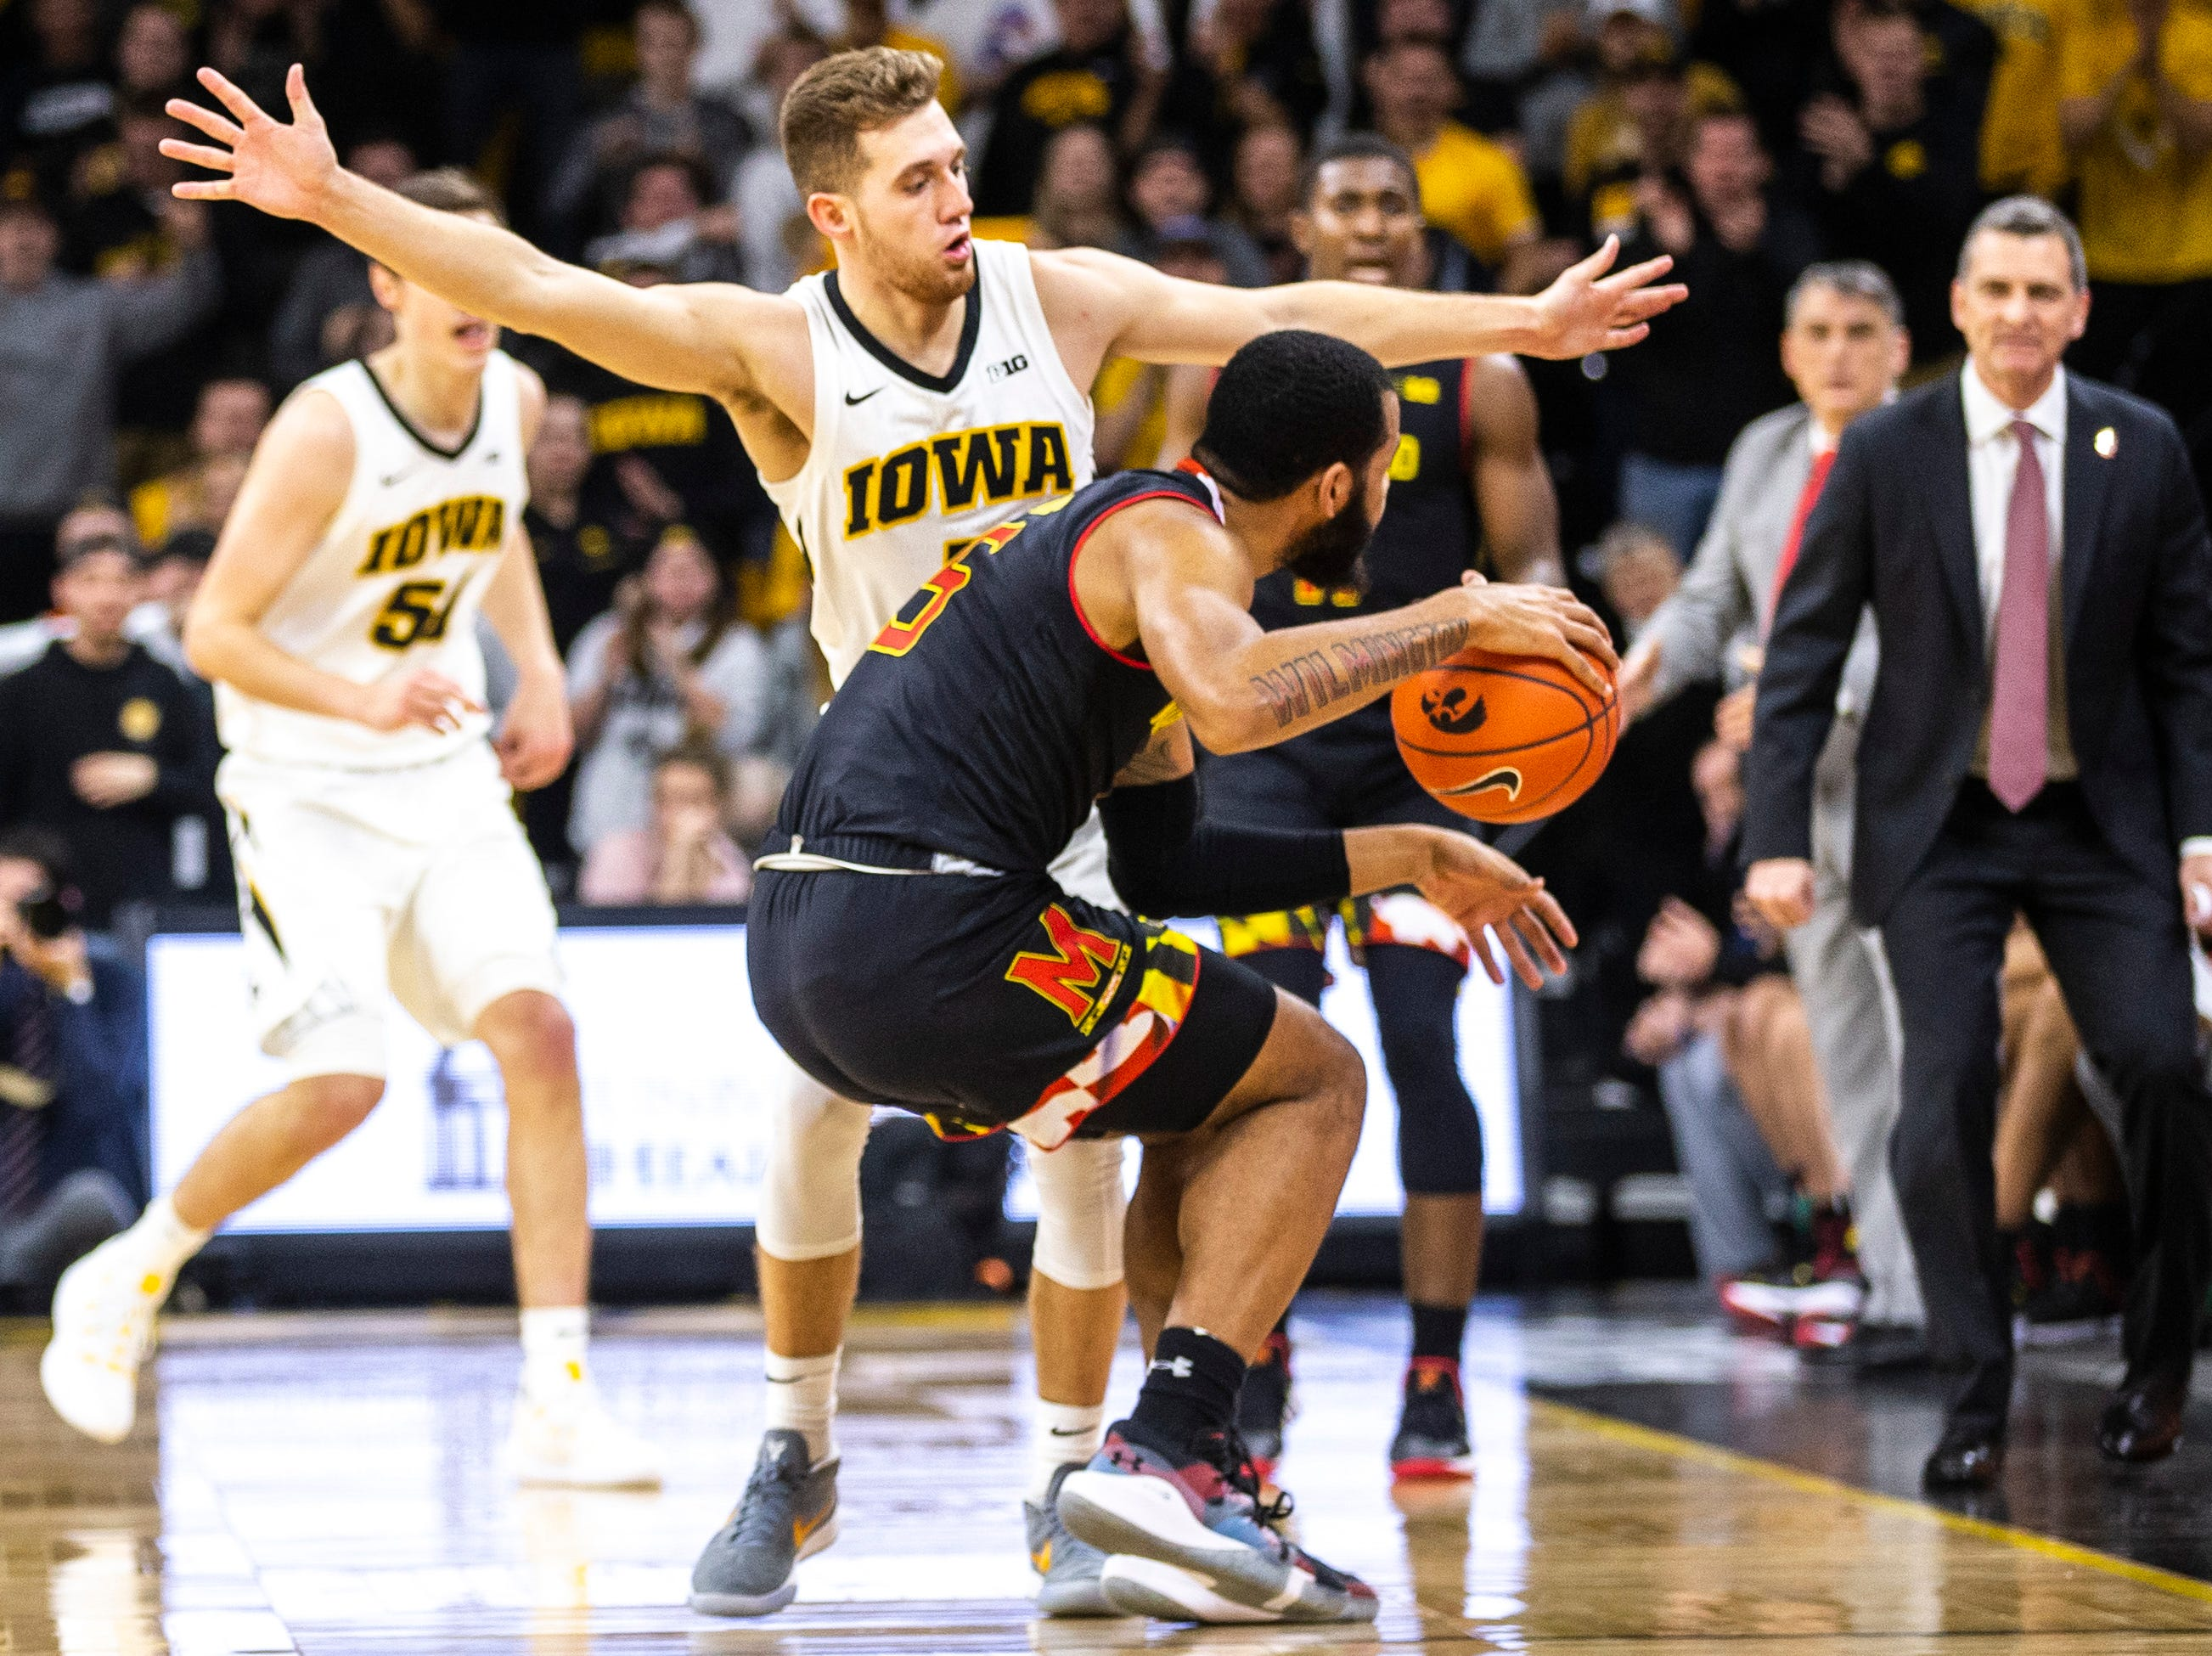 Iowa guard Jordan Bohannon (left) defends Maryland guard Eric Ayala (5) during a NCAA Big Ten Conference men's basketball game on Tuesday, Feb. 19, 2019 at Carver-Hawkeye Arena in Iowa City, Iowa.